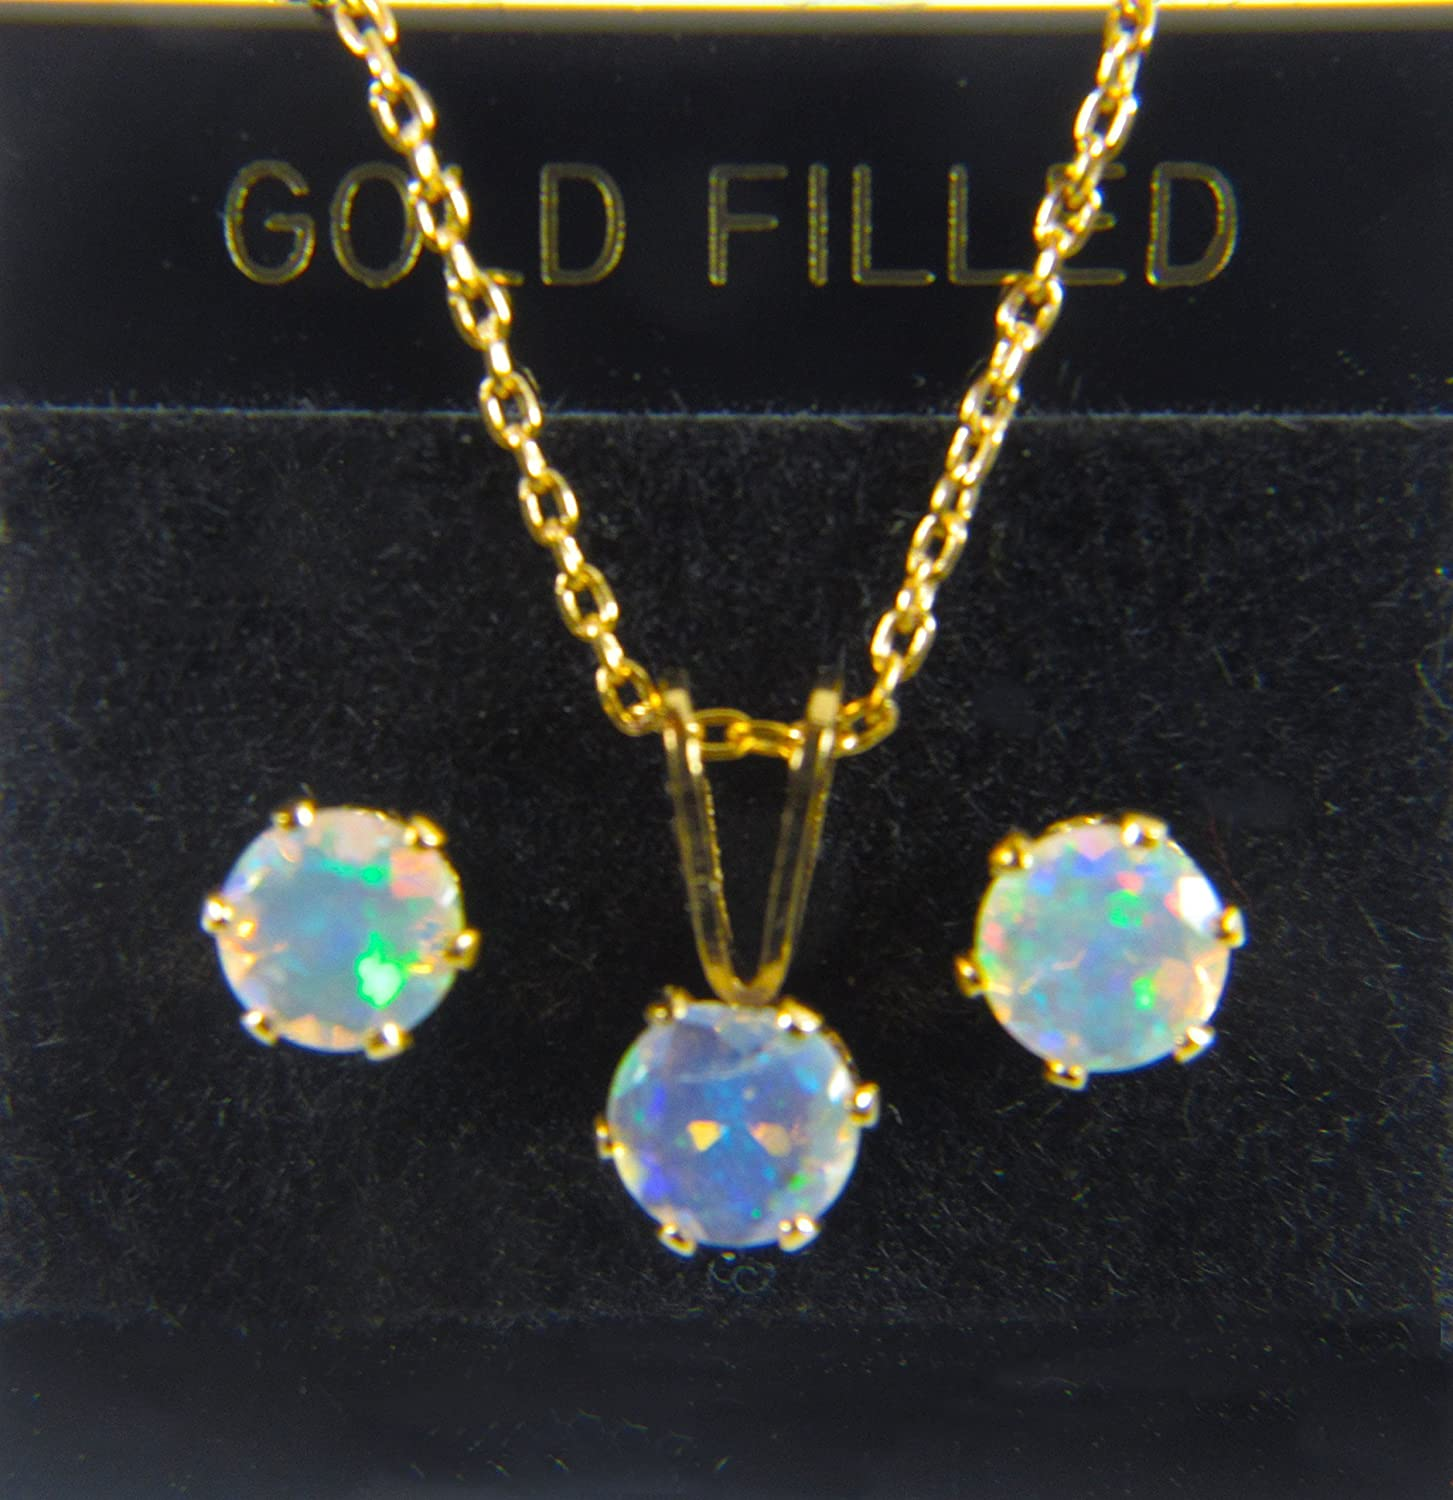 AAA+ grade, 4mm Round Opal, Natural Ethiopian Welo Fiery Opals in 14kt GOLD FILL SET of Necklace & Earrings. October Birthstone with excellent color play.